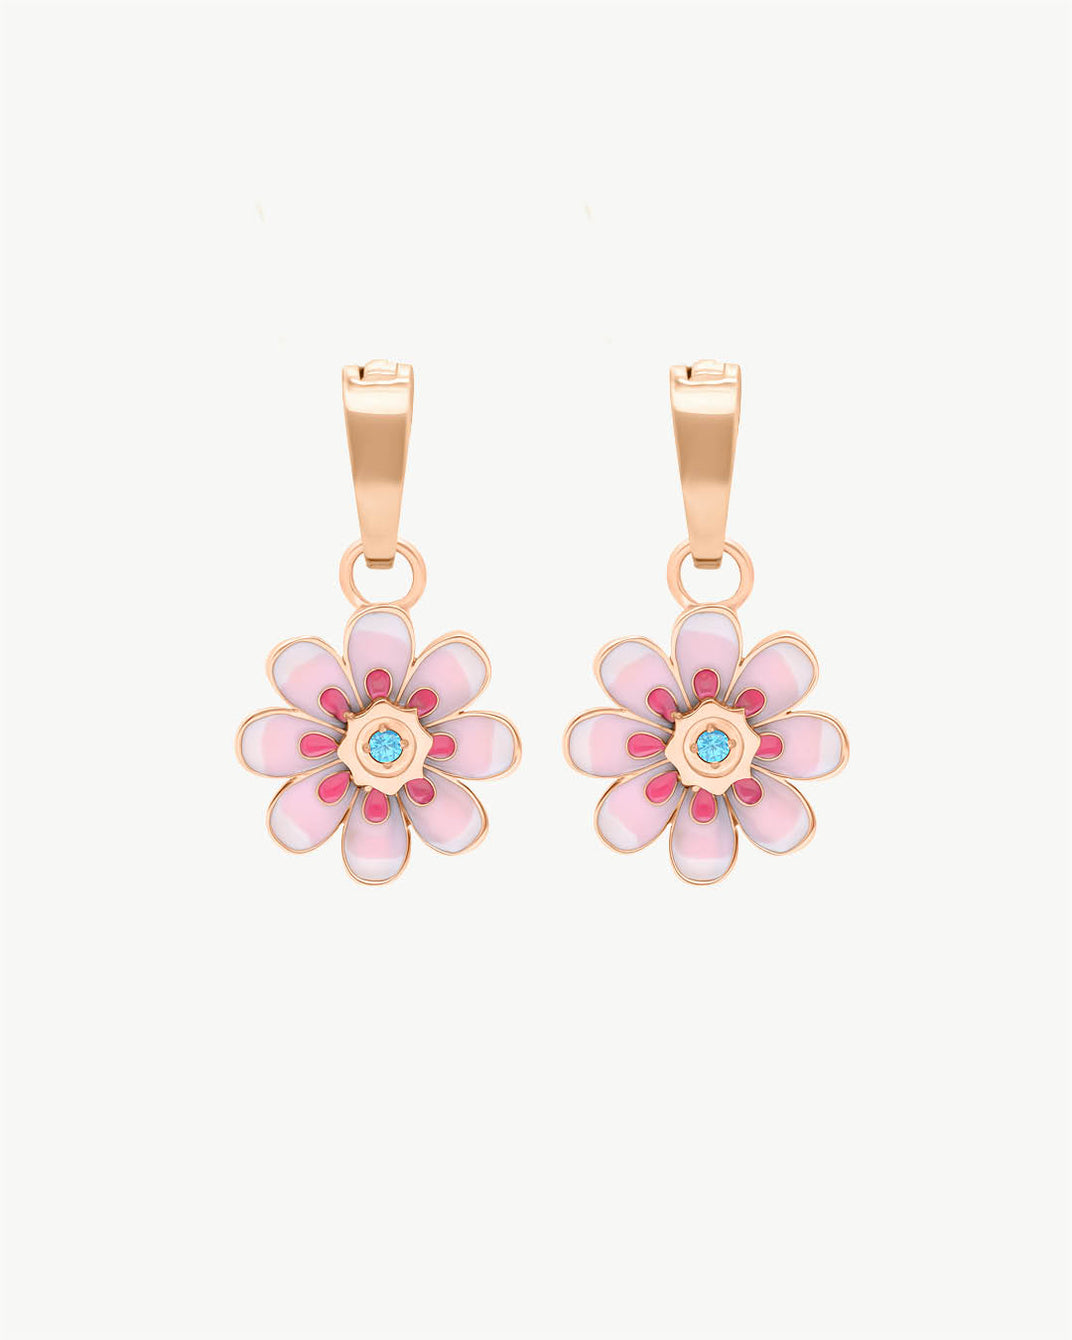 Pendentifs Boucle D'oreille Oopsy Daisy Rose, Or Rose